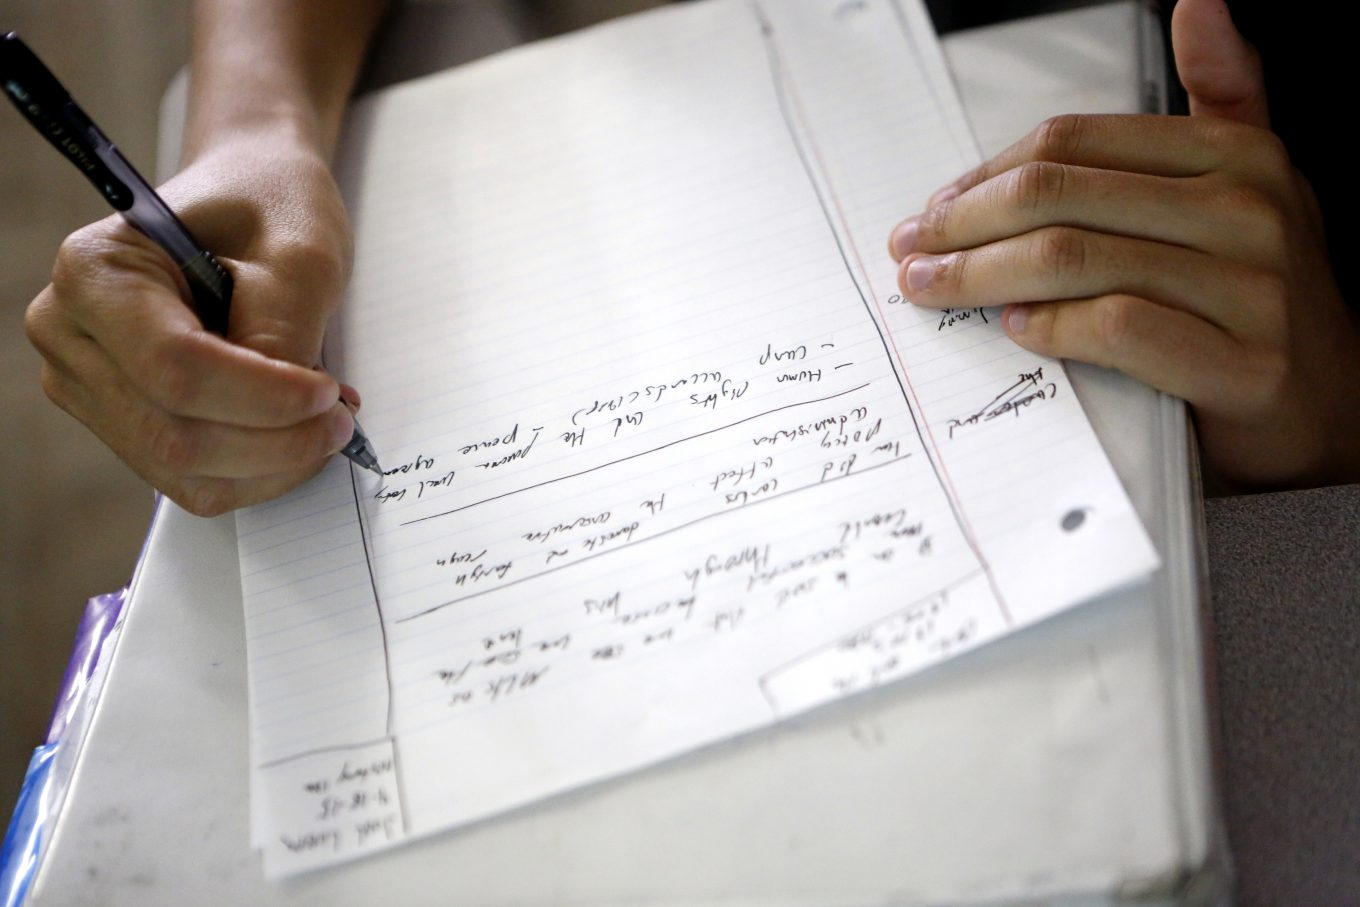 Joel Luera takes notes during a history lecture at Eastfield College in Mesquite. Photo/Lara Solt